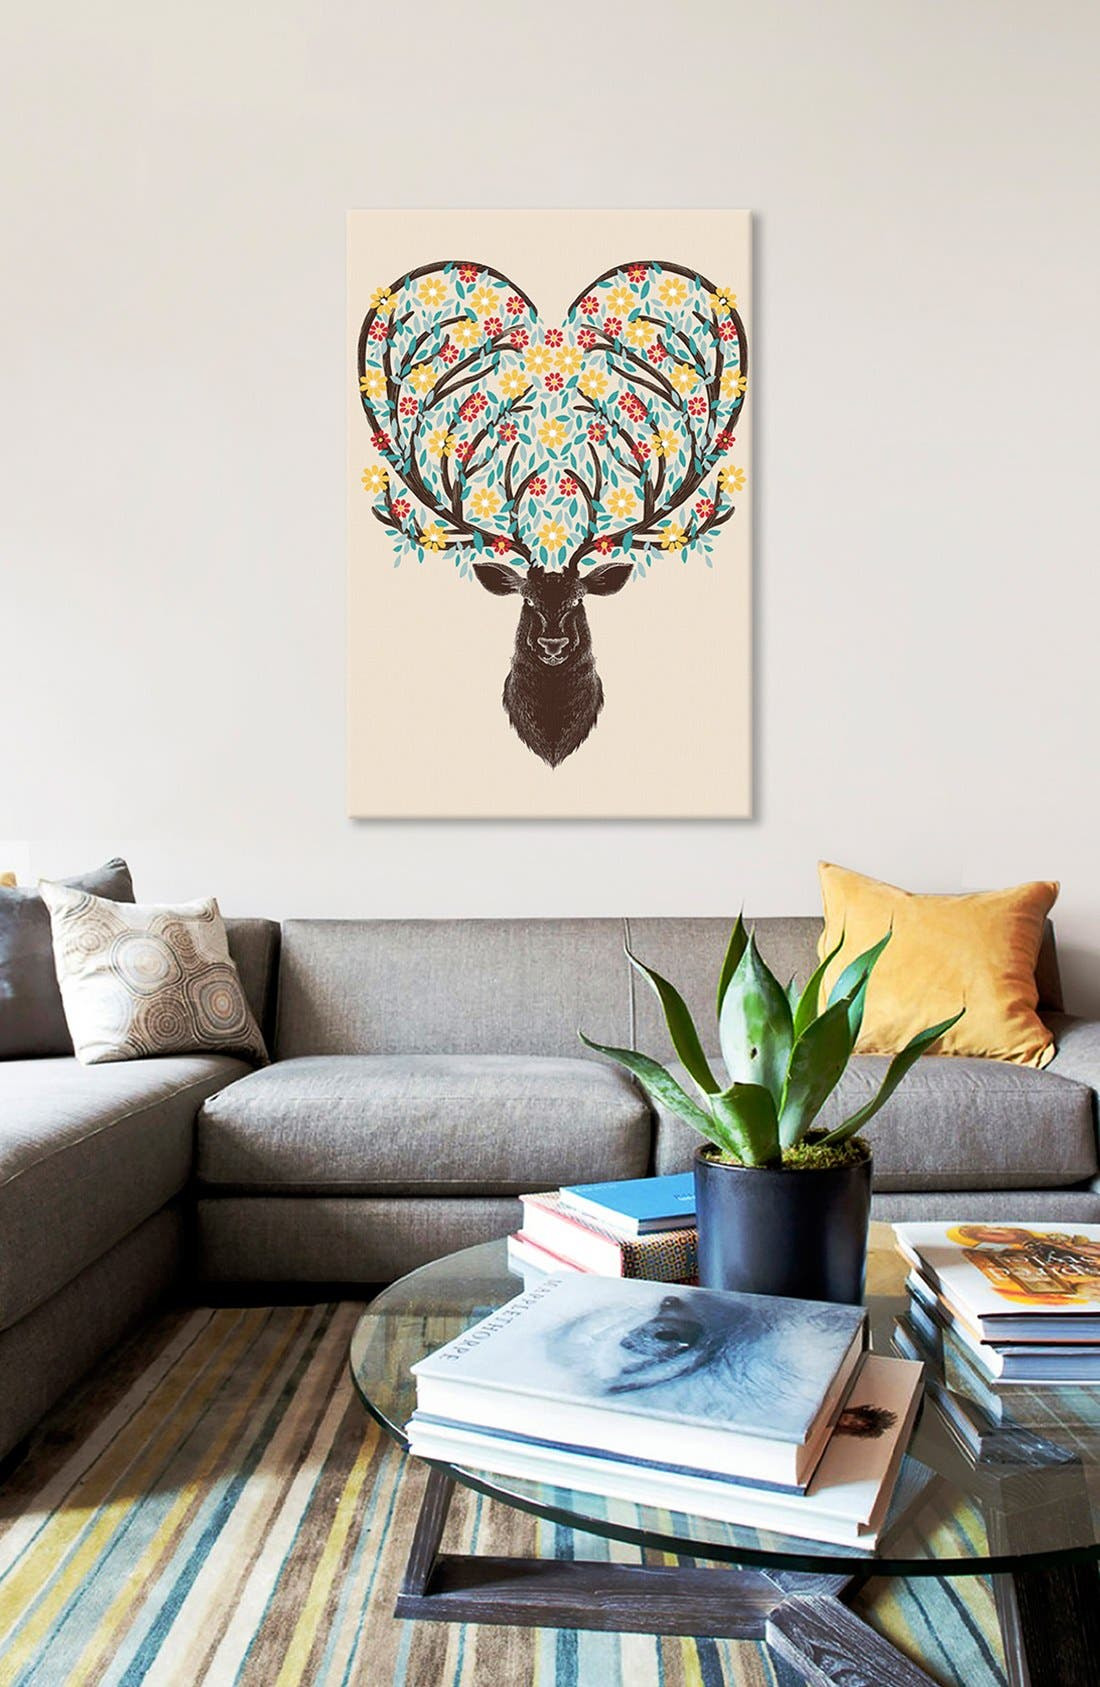 'Blooming Deer' Giclée Print Canvas Art,                             Alternate thumbnail 2, color,                             250